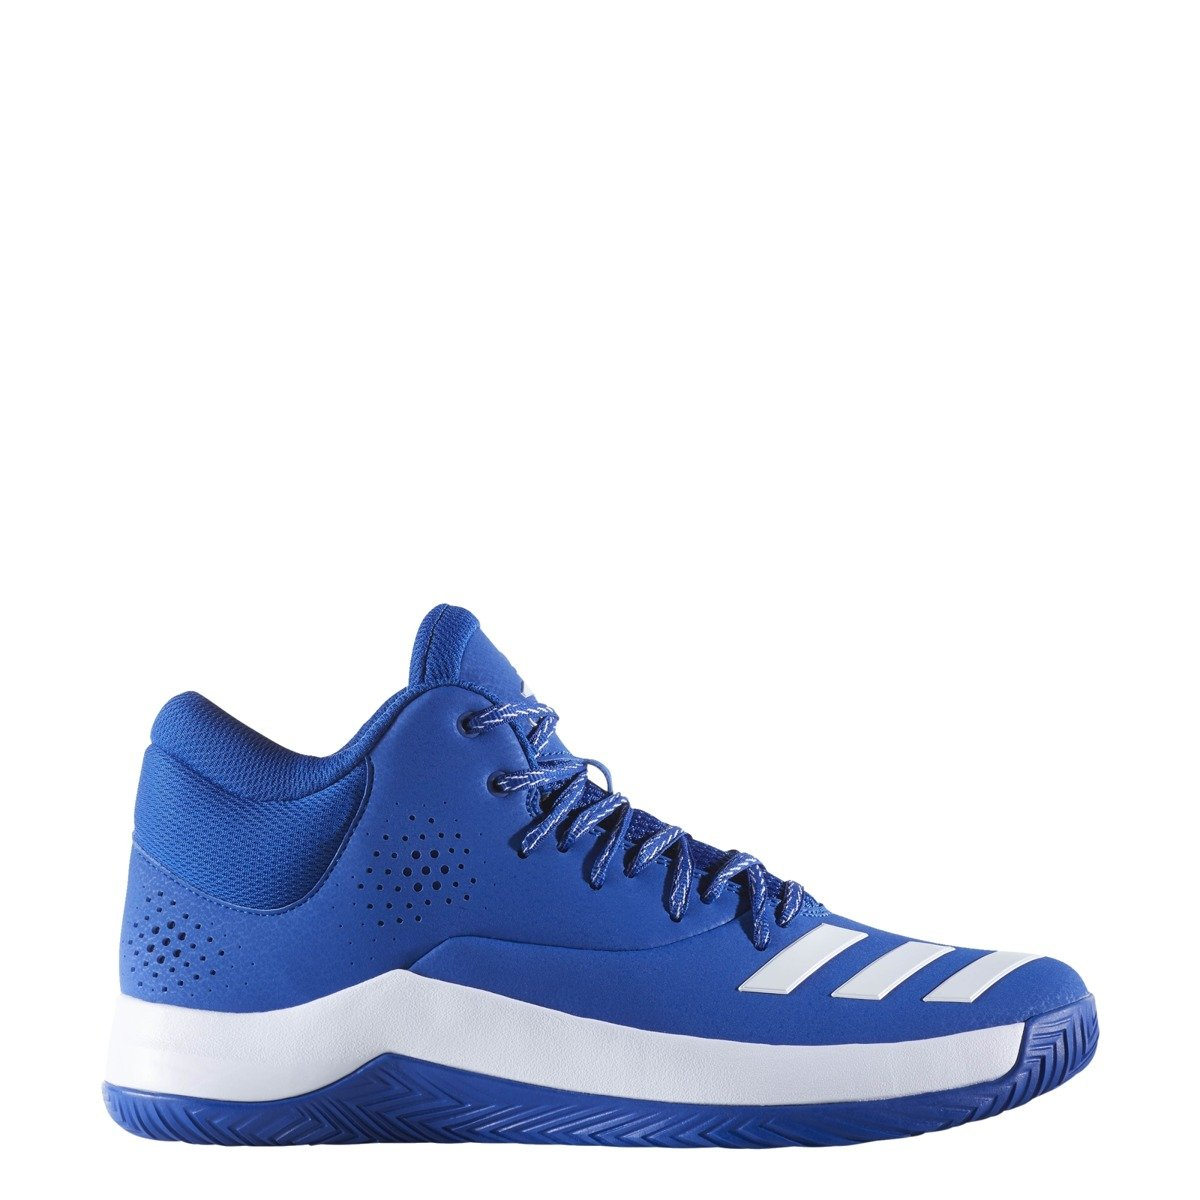 adidas basketball shoes 2017. adidas court fury 2017 - by4185 basketball shoes a